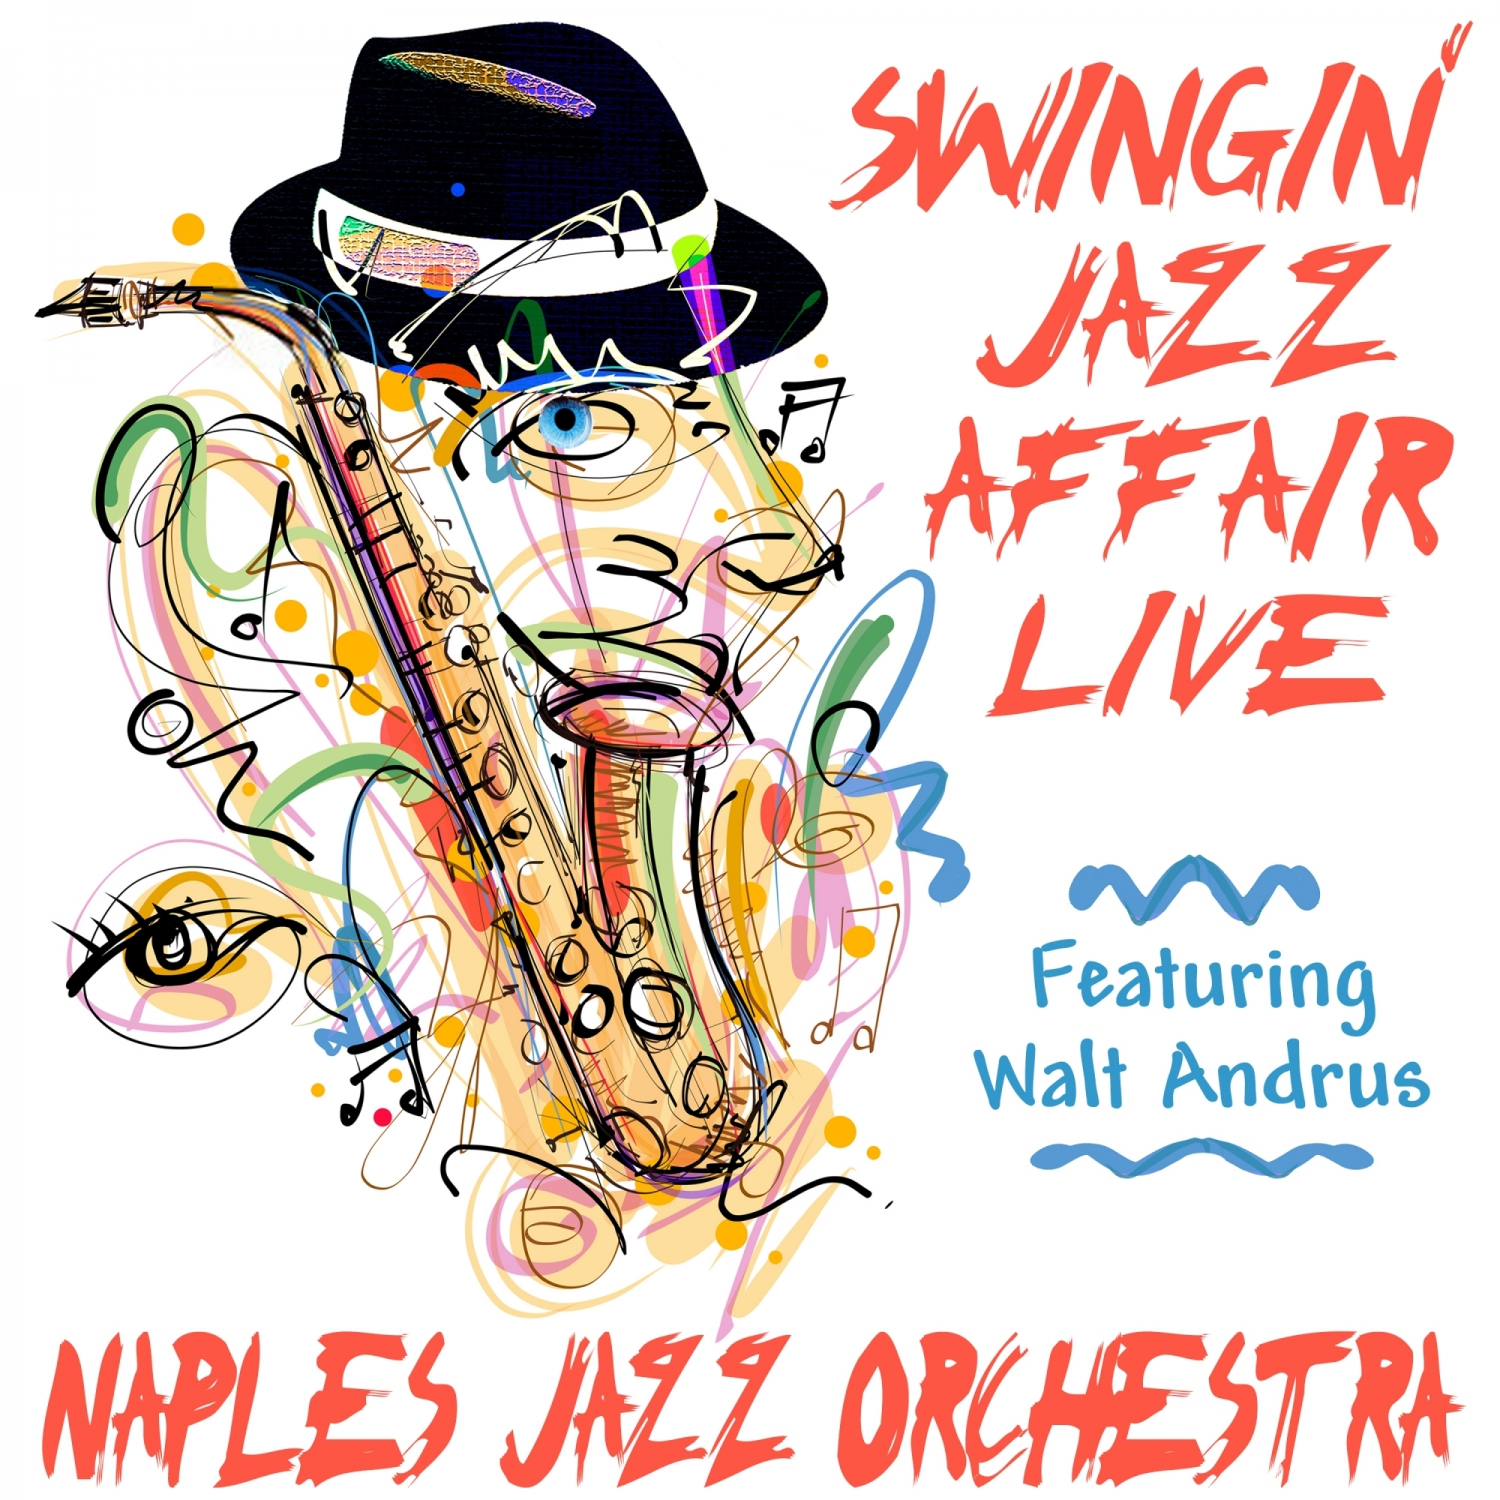 The Naples Jazz Orchestra  - Street of Dreams  (feat. Walt Andrus)